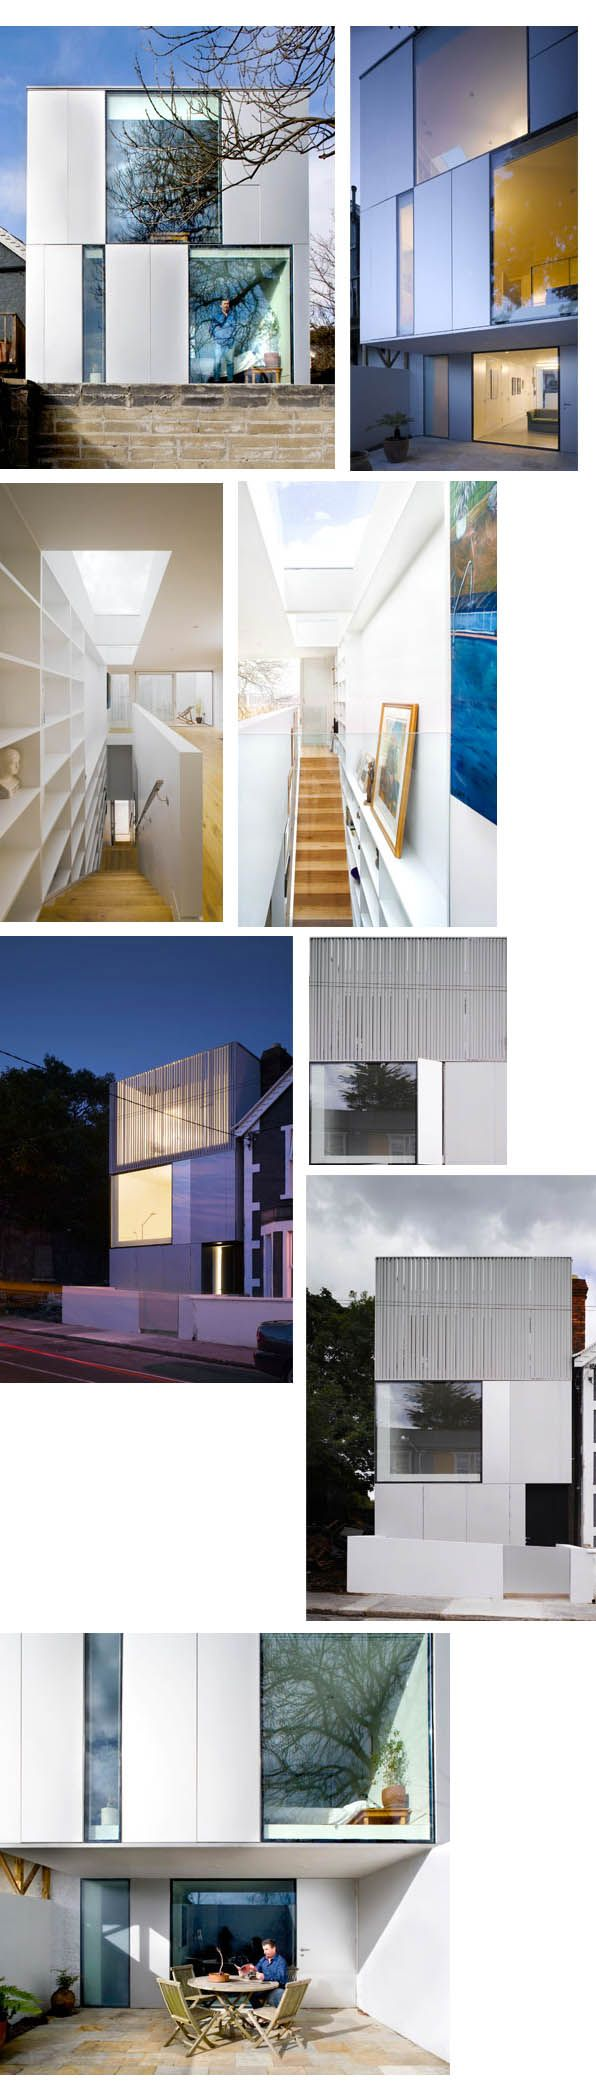 1485 best Contemporary architecture images on Pinterest ...